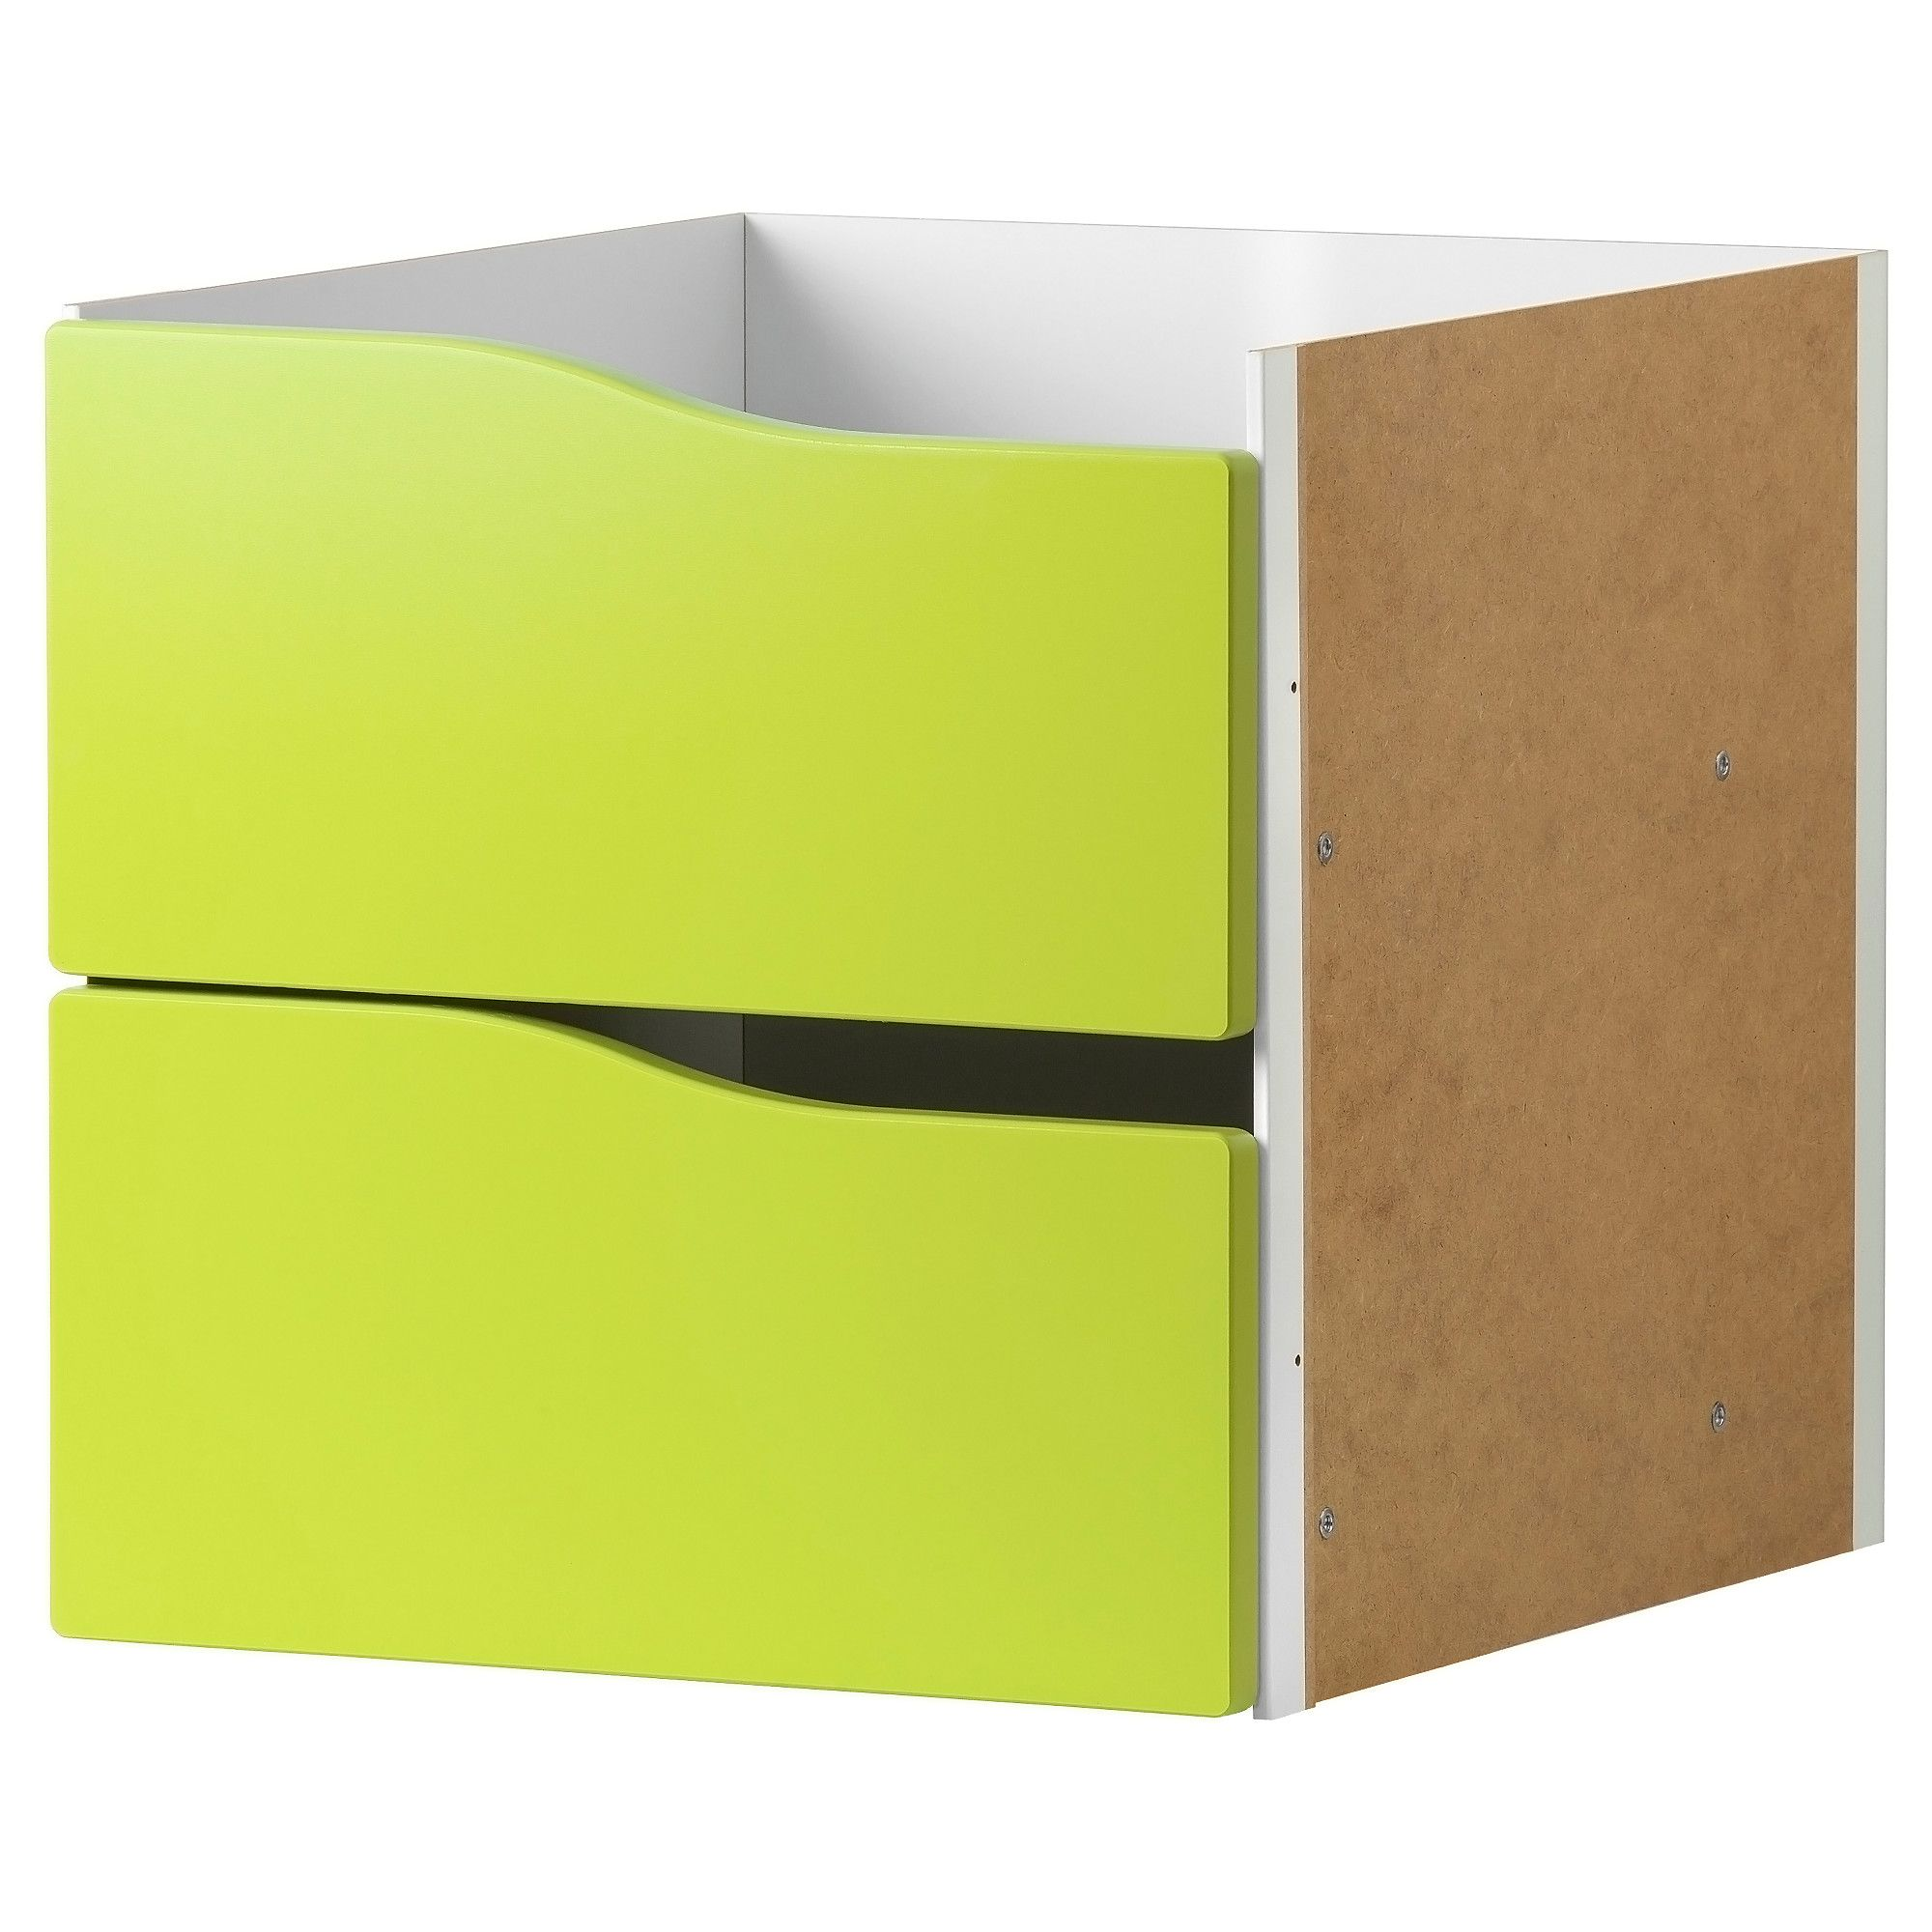 Kallax Insert With 2 Drawers Light Green 33×33 Cm Kallax Insert  # Ikea Odda A Roulette